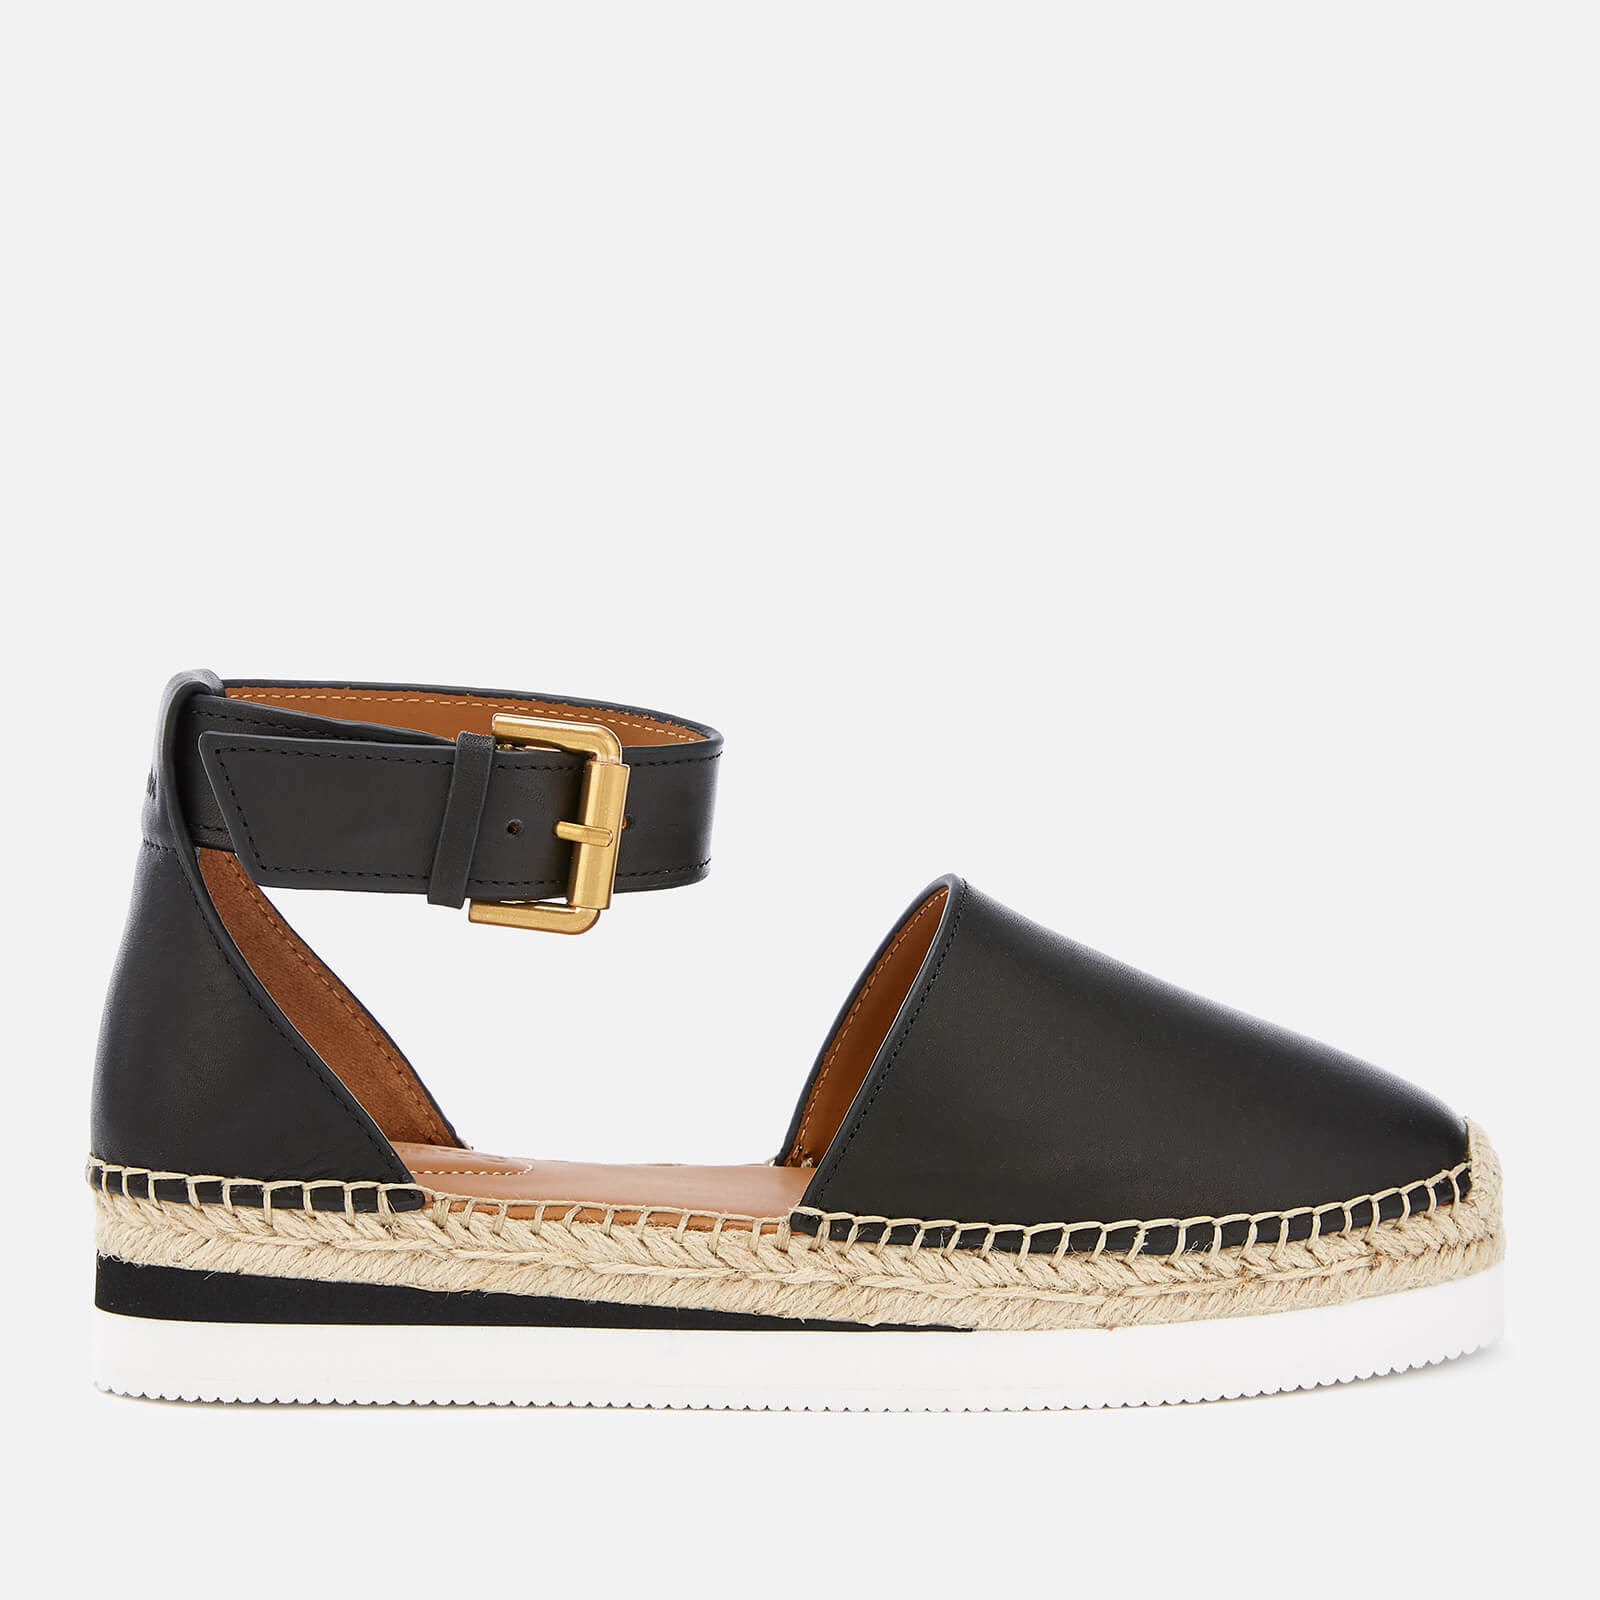 8d3e87a8b3f See By Chloé Women s Glyn Leather Espadrille Flat Sandals - Black ...